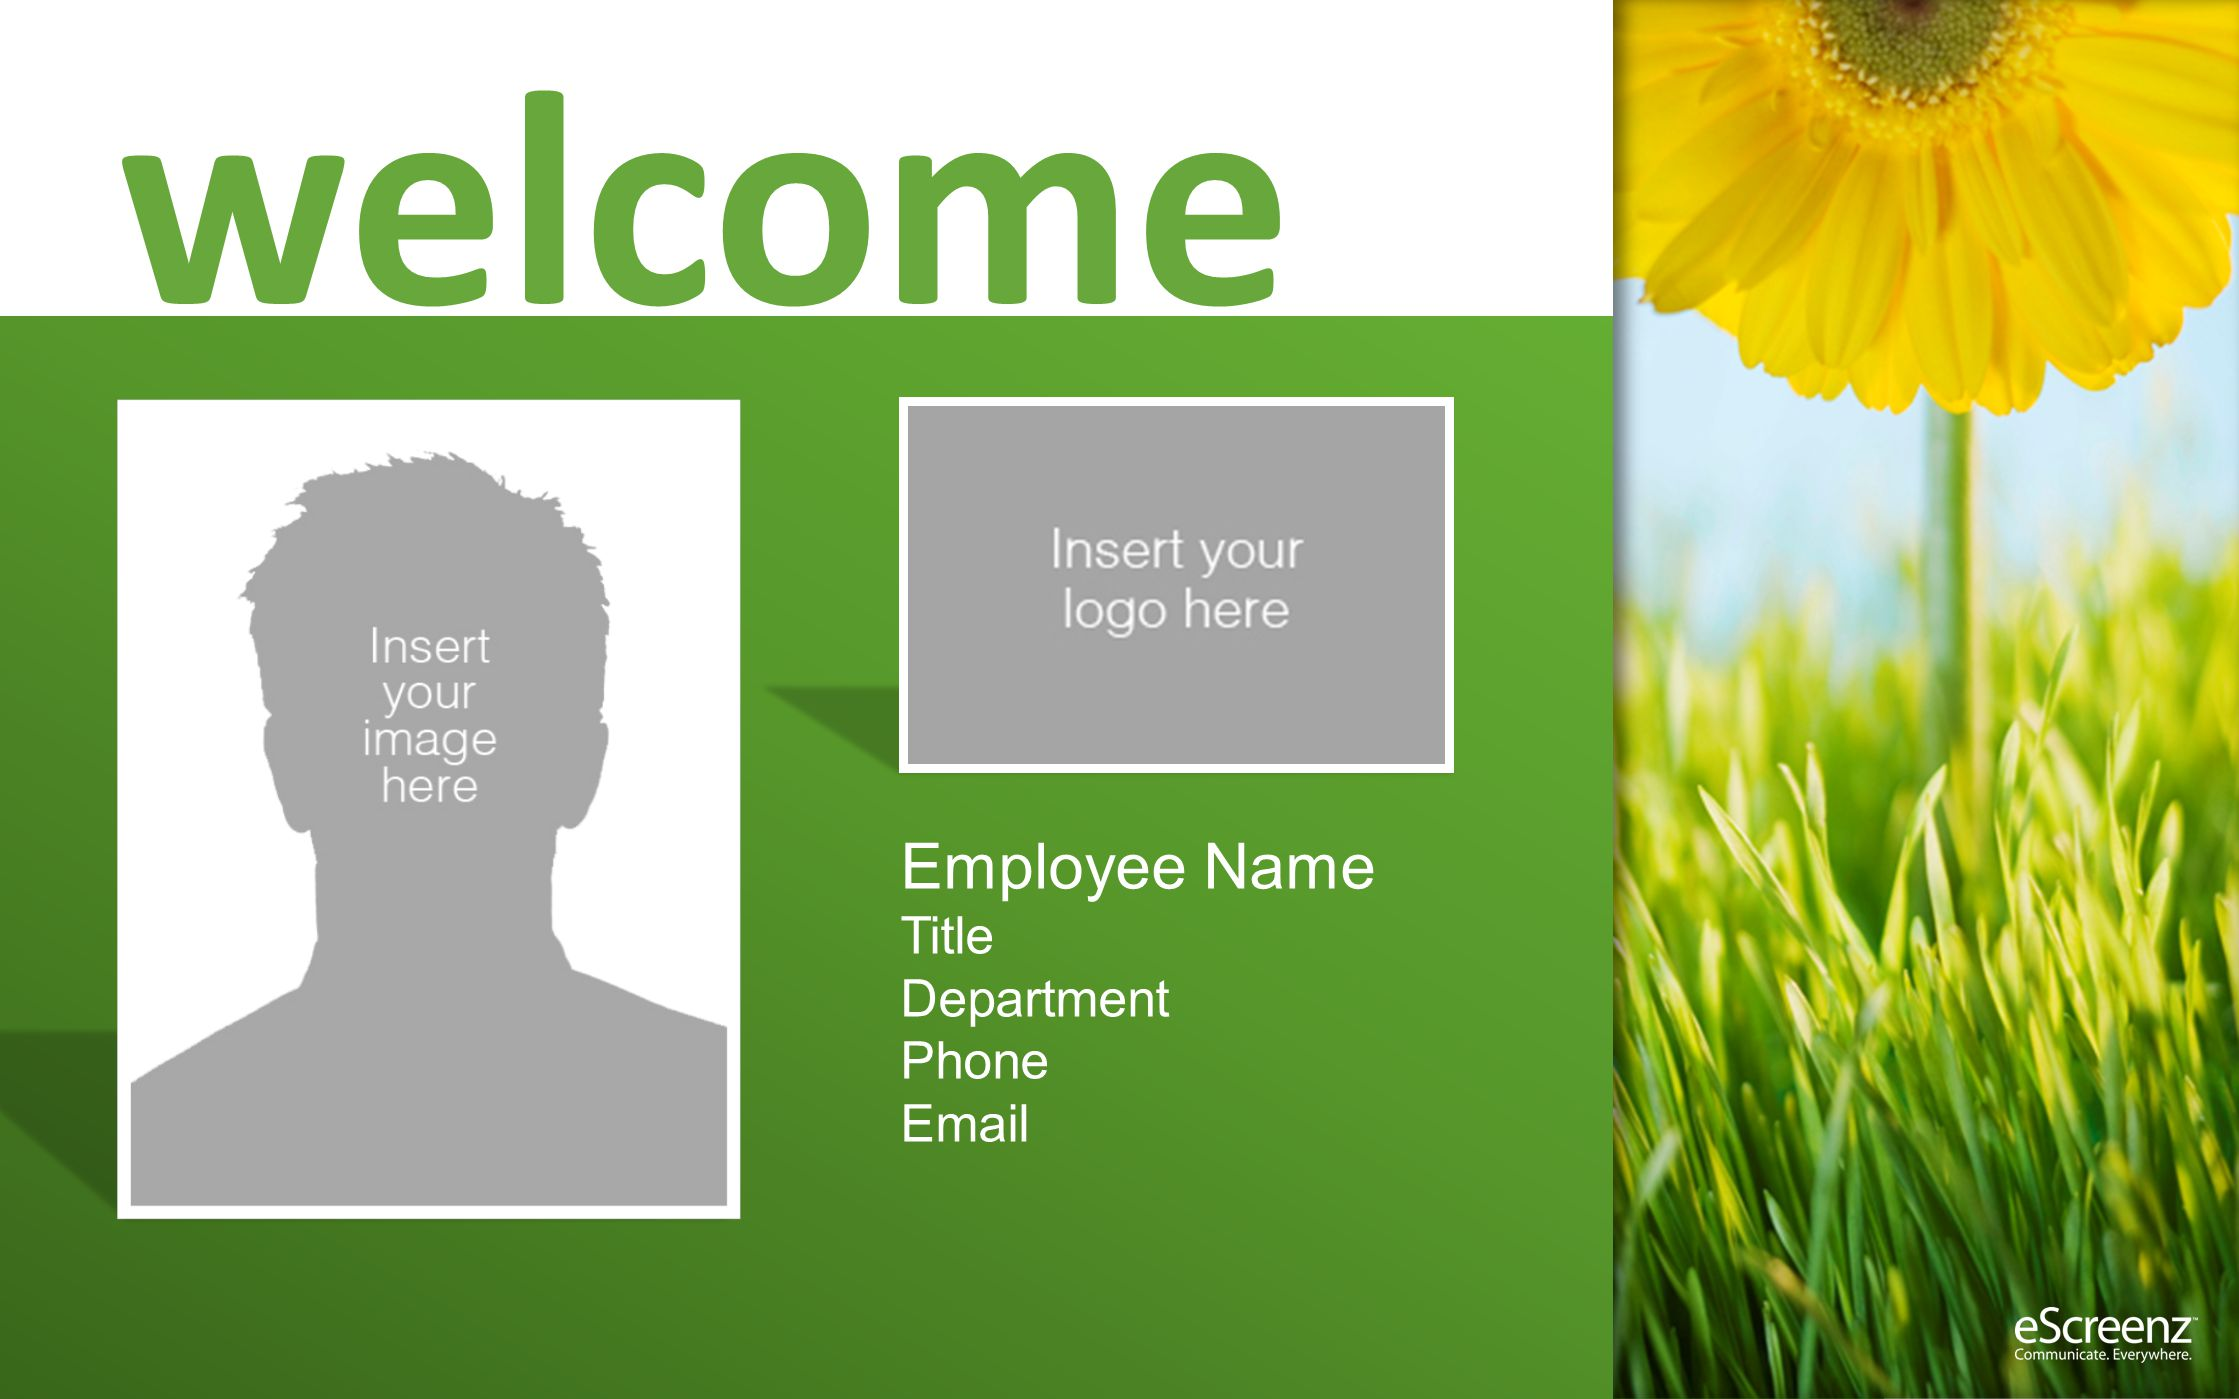 welcome Employee Name Title Department Phone Email